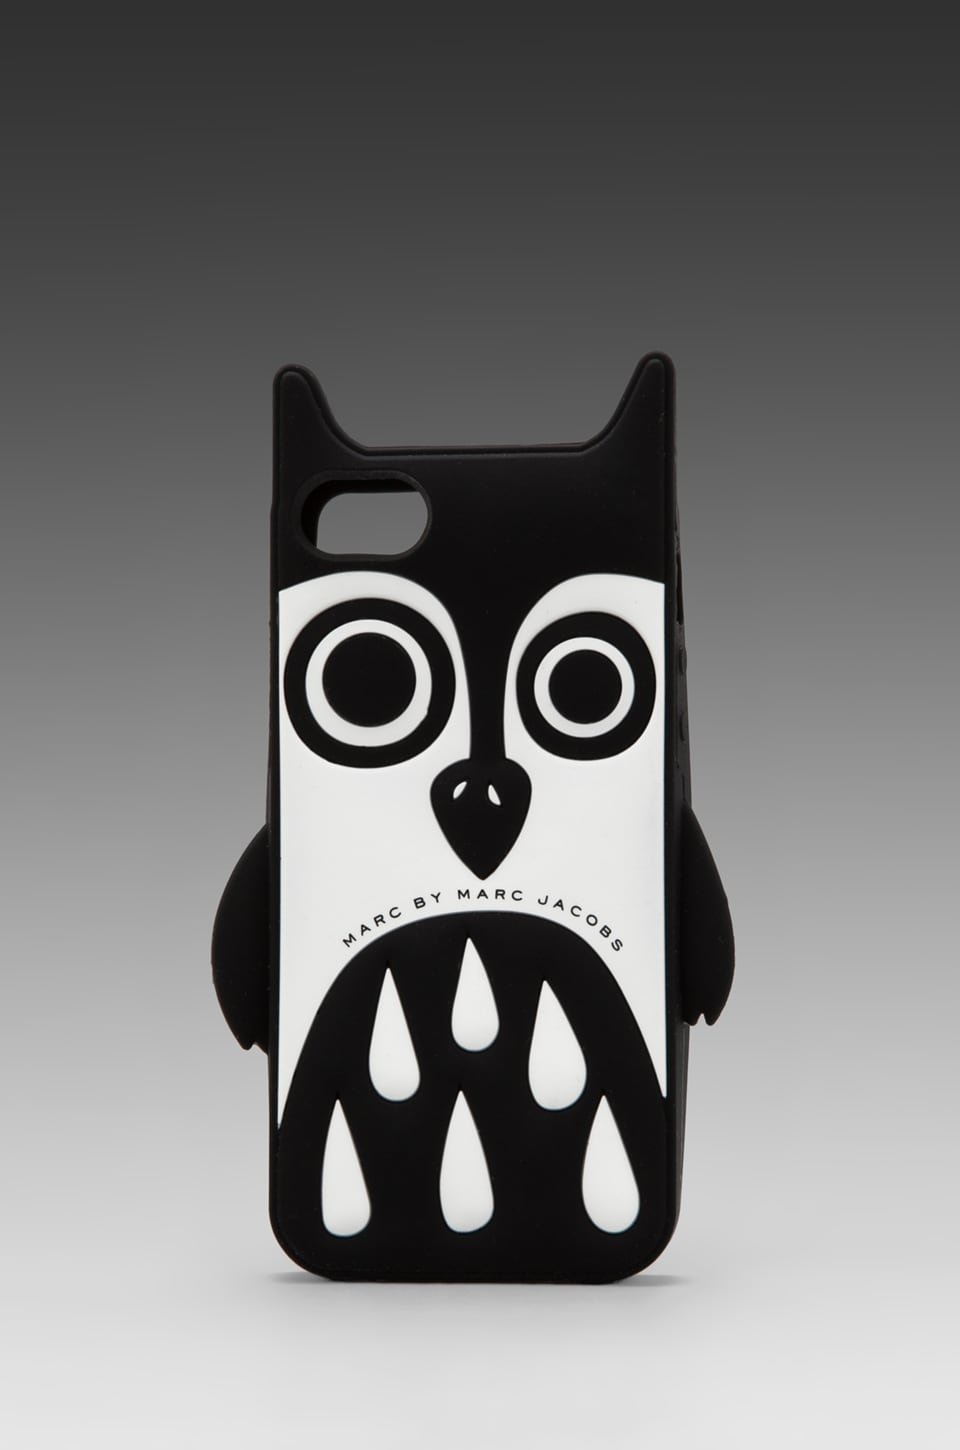 Marc by Marc Jacobs Javier Animal Creature Phone Case in Black